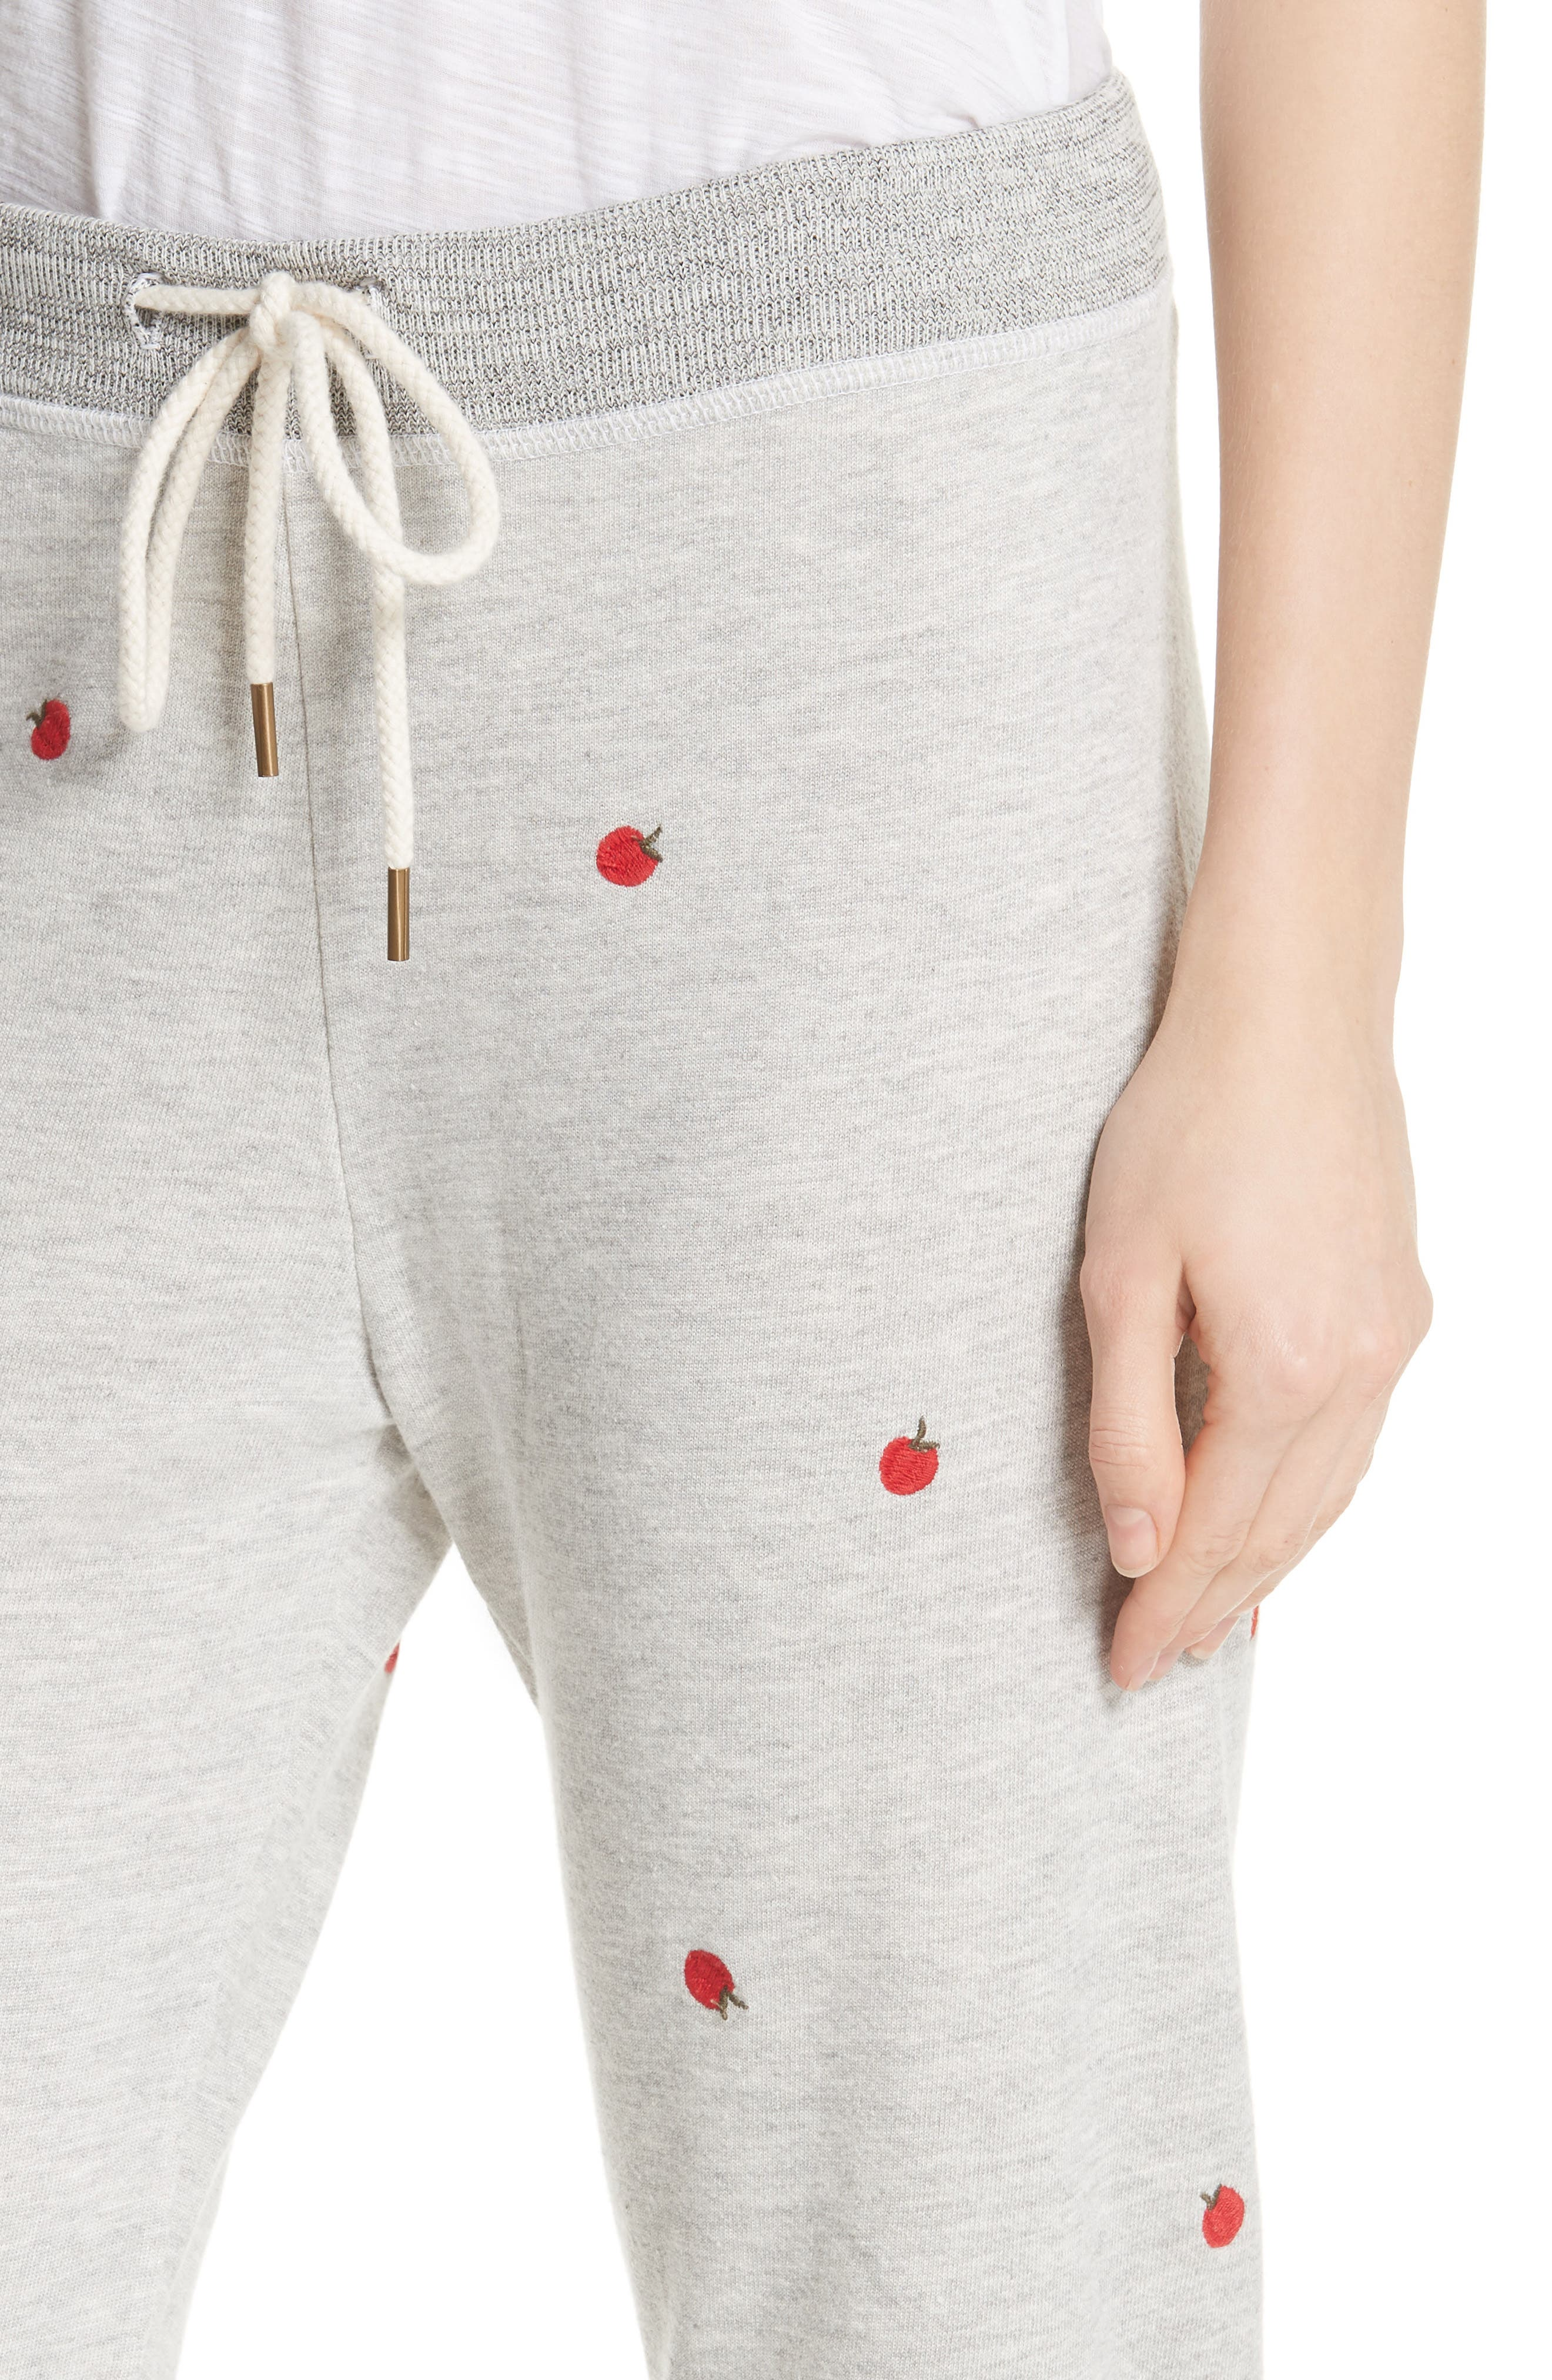 The Cropped Sweatpants,                             Alternate thumbnail 4, color,                             Light Heather Grey/ Red Apples